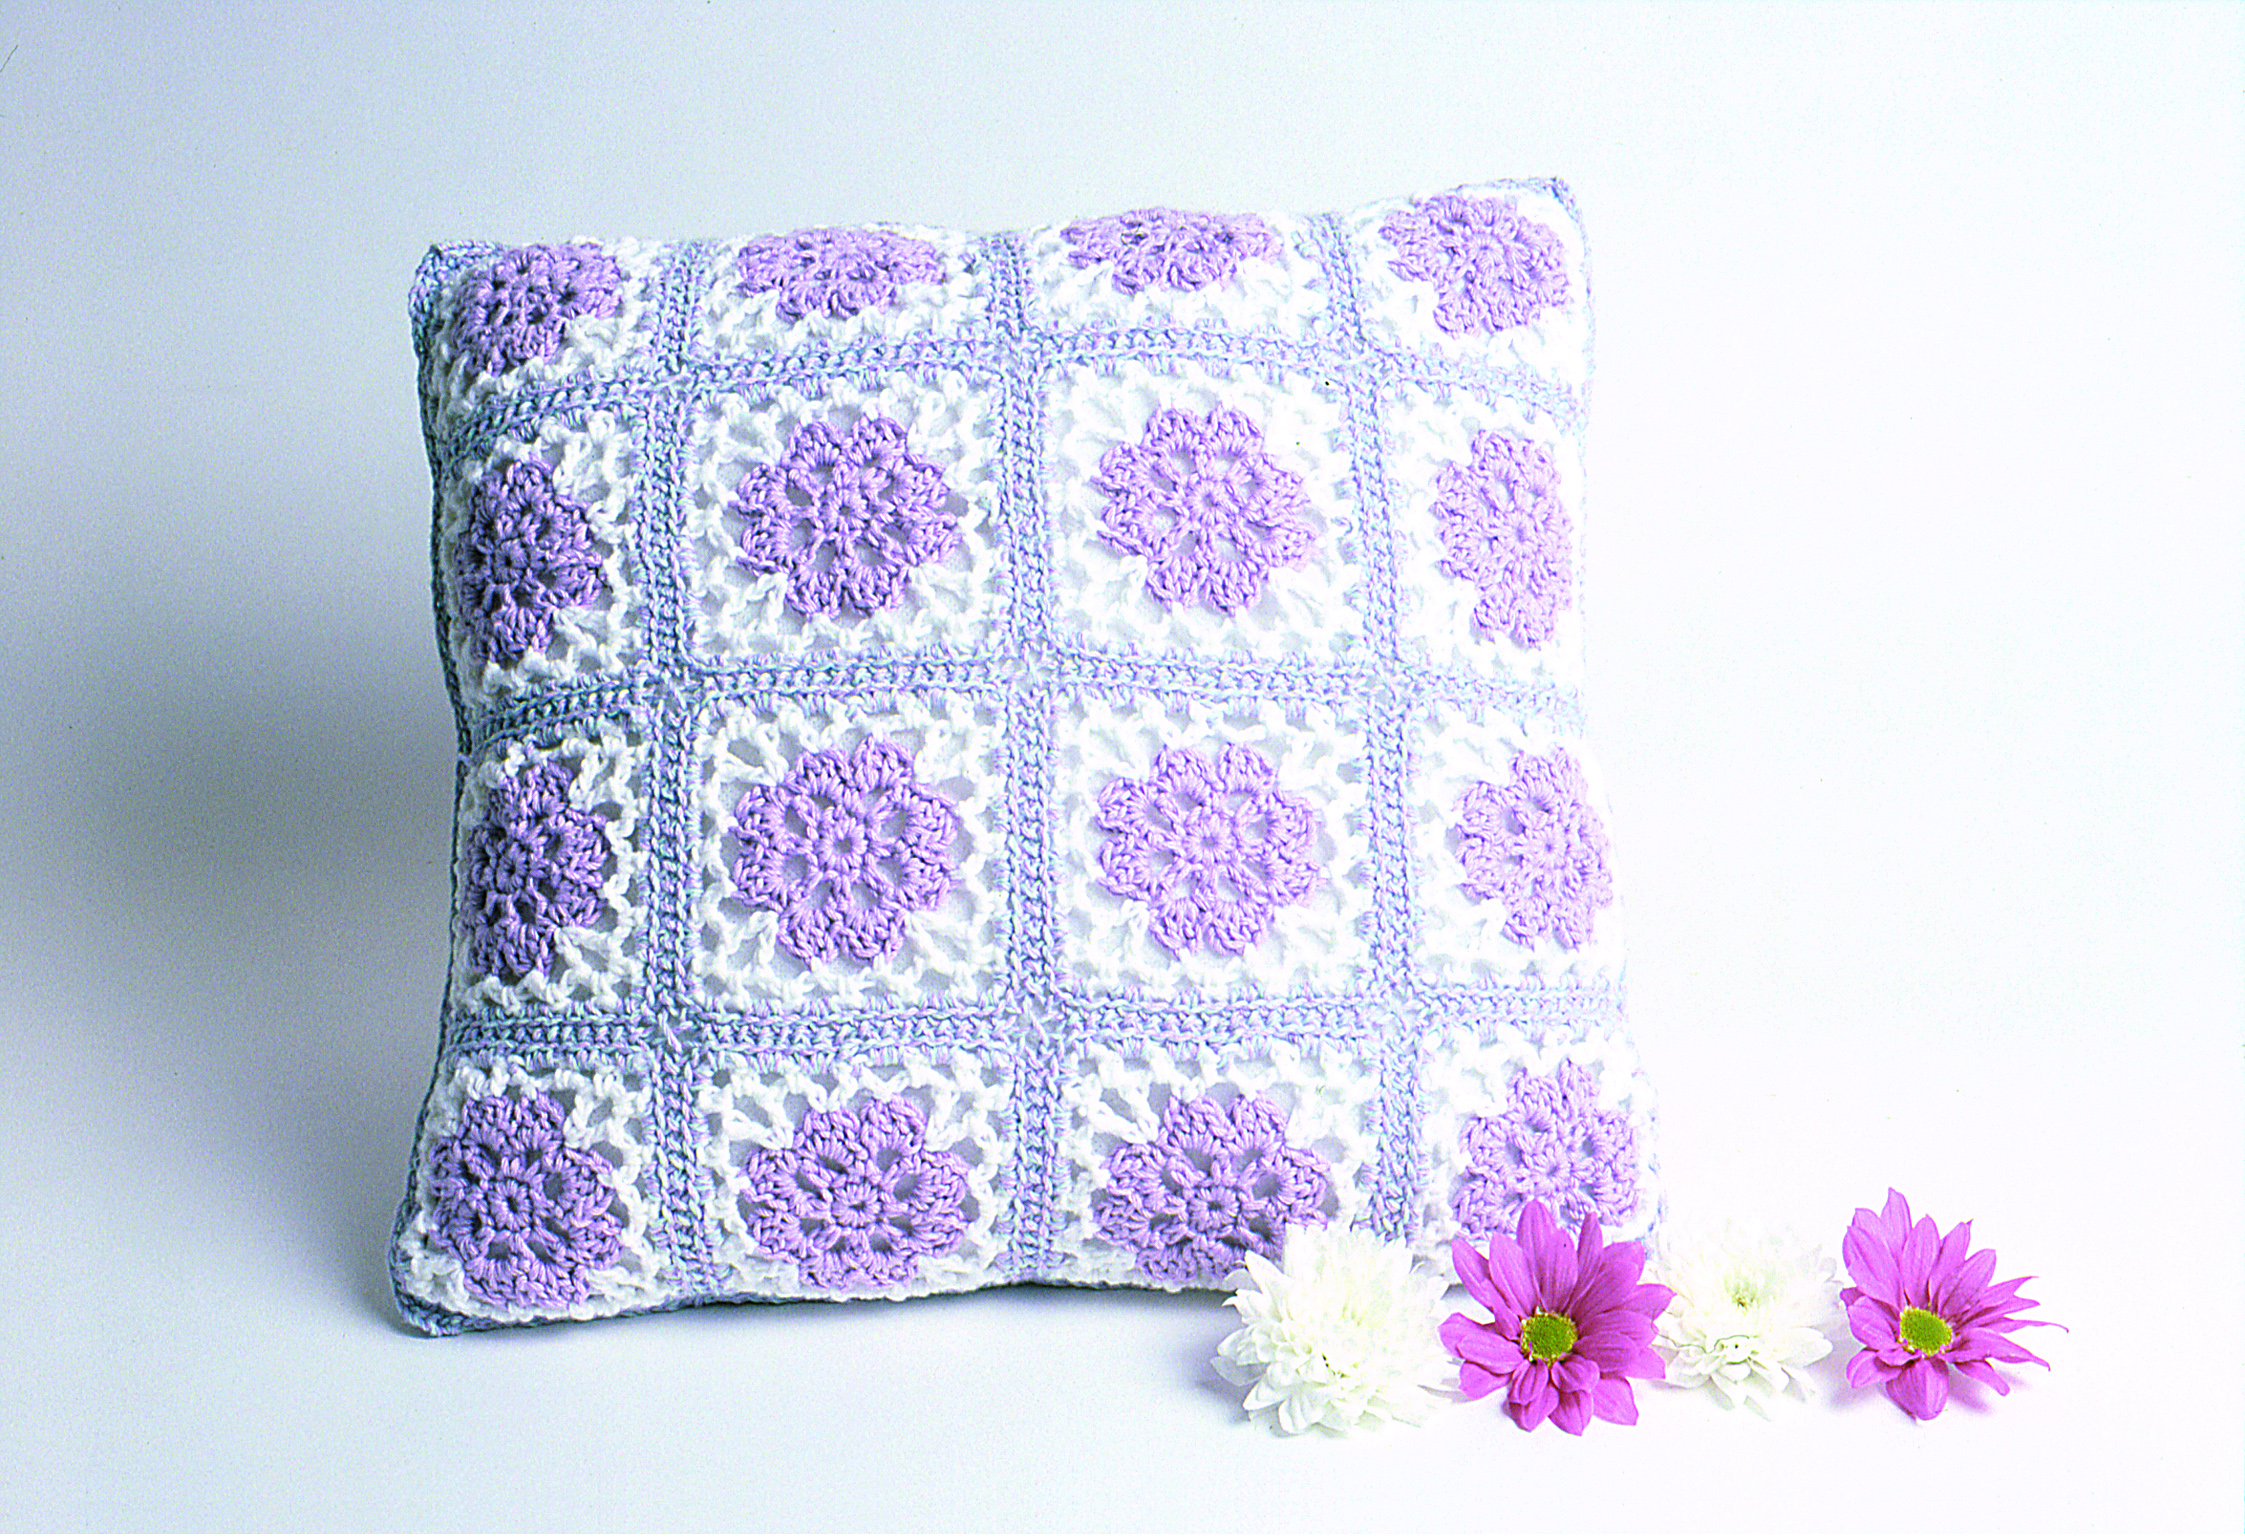 Free Crochet Patterns : Pottage Publishing